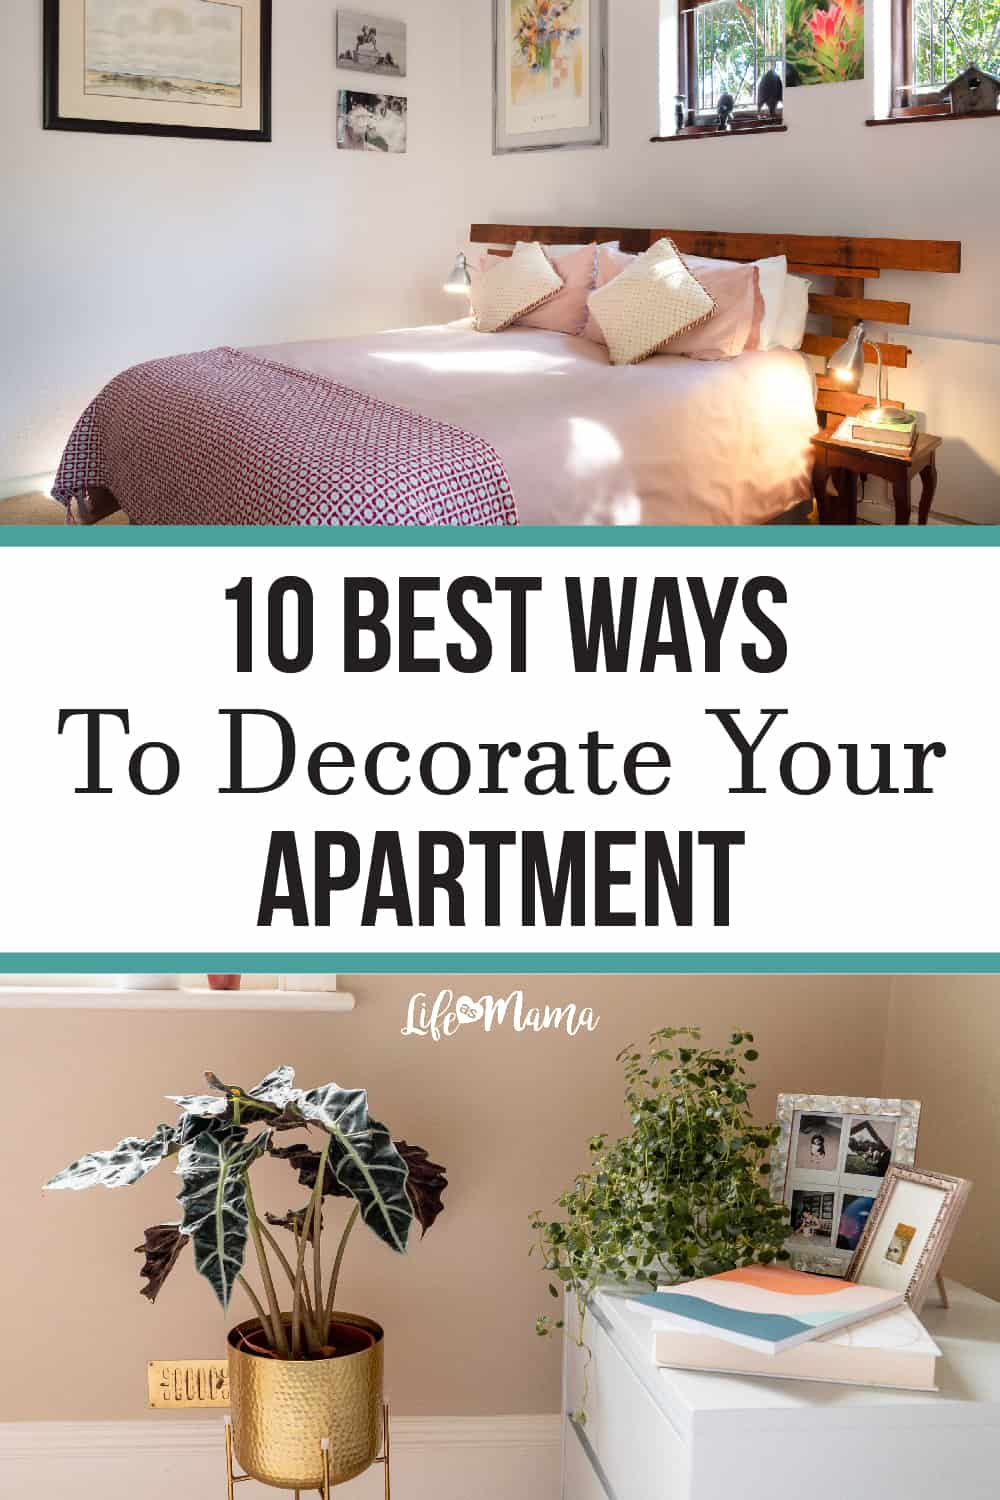 How To Decorate Your Apartment On A Budget-04-01